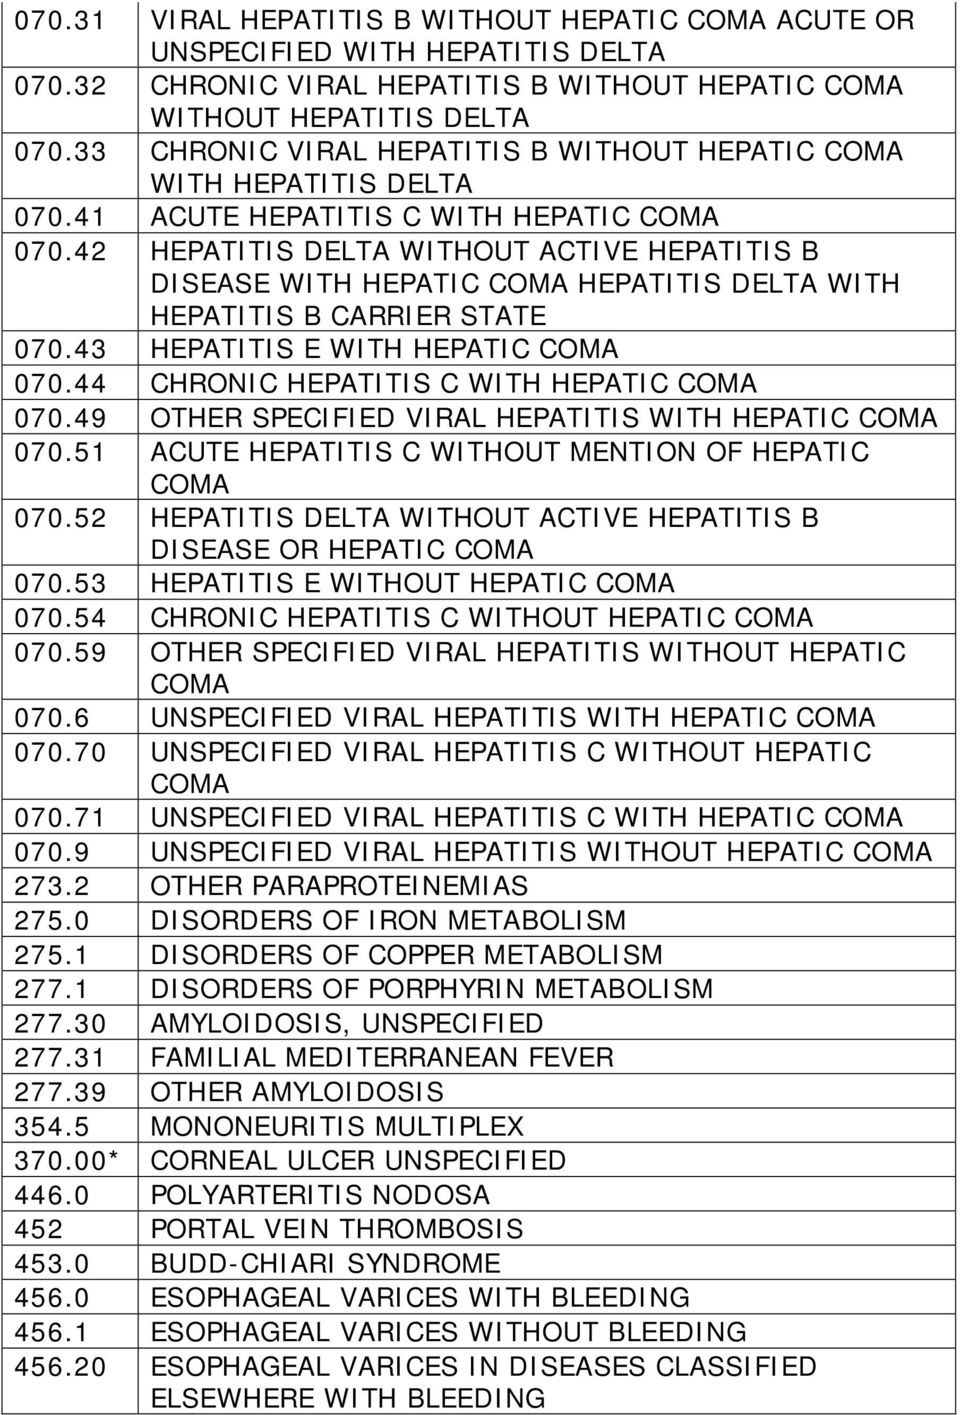 42 HEPATITIS DELTA WITHOUT ACTIVE HEPATITIS B DISEASE WITH HEPATIC HEPATITIS DELTA WITH HEPATITIS B CARRIER STATE 070.43 HEPATITIS E WITH HEPATIC 070.44 CHRONIC HEPATITIS C WITH HEPATIC 070.